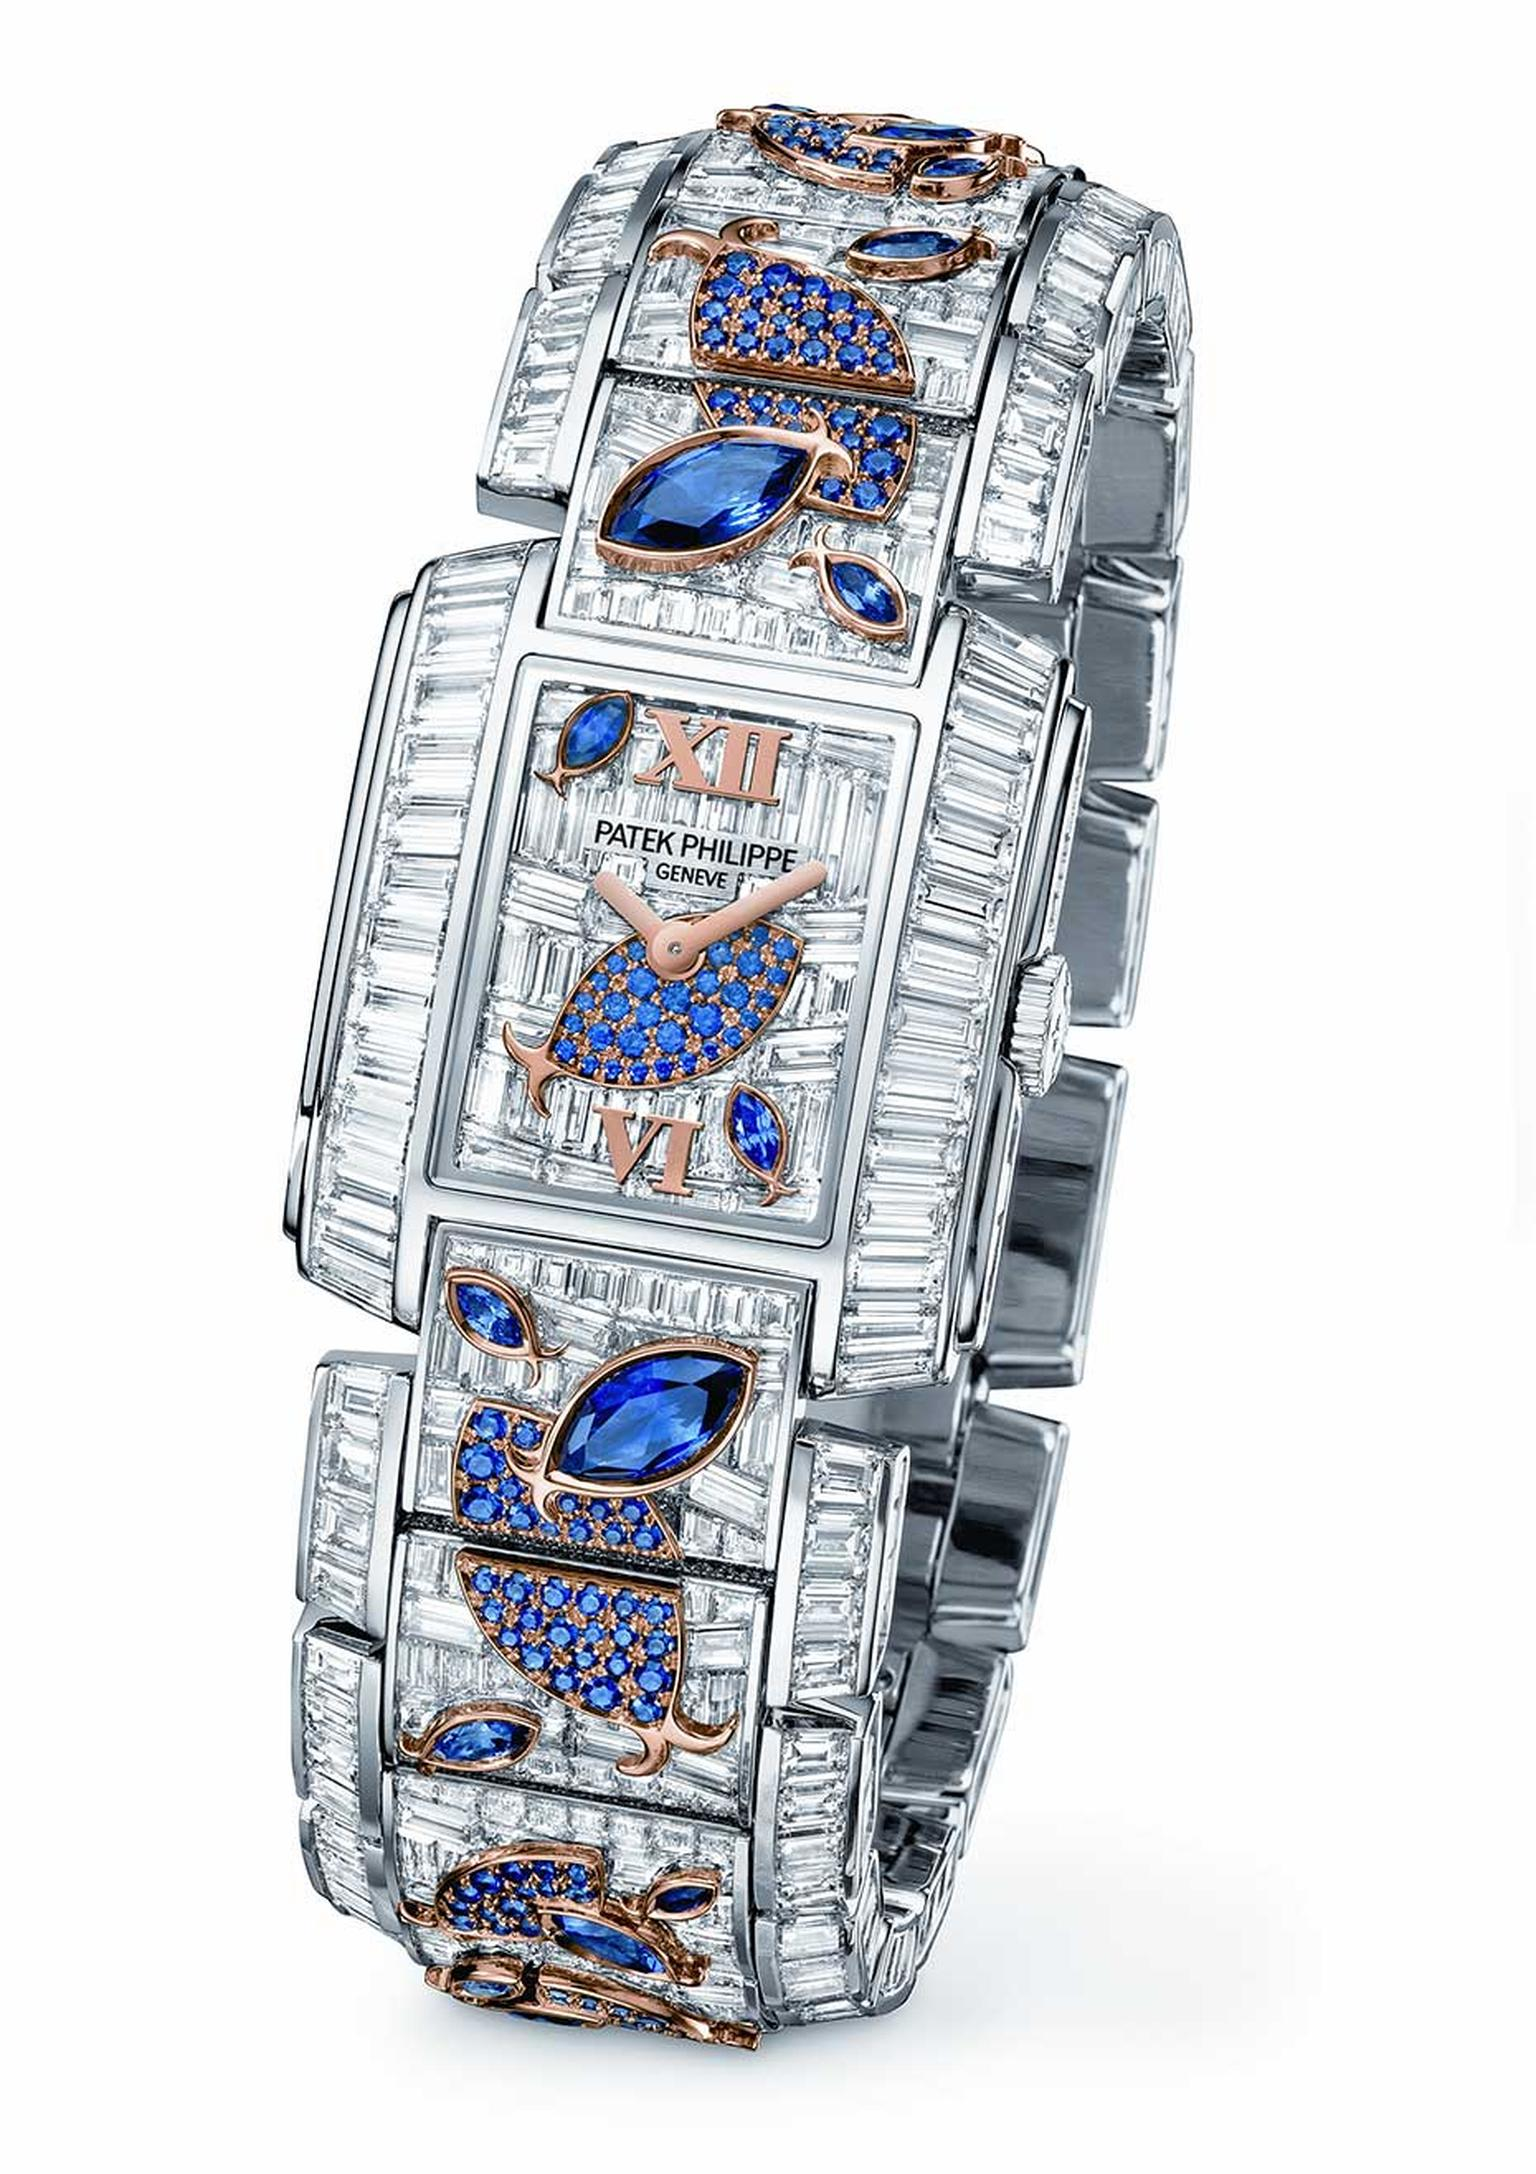 The Patek Philippe Twenty-4® Haute Joaillerie Ref. 4909/110 'Aquatic Life' is set with 1,937 diamonds and 43.74ct of sapphires. The beauty of the underwater scenery is achieved by the different cuts of precious stones